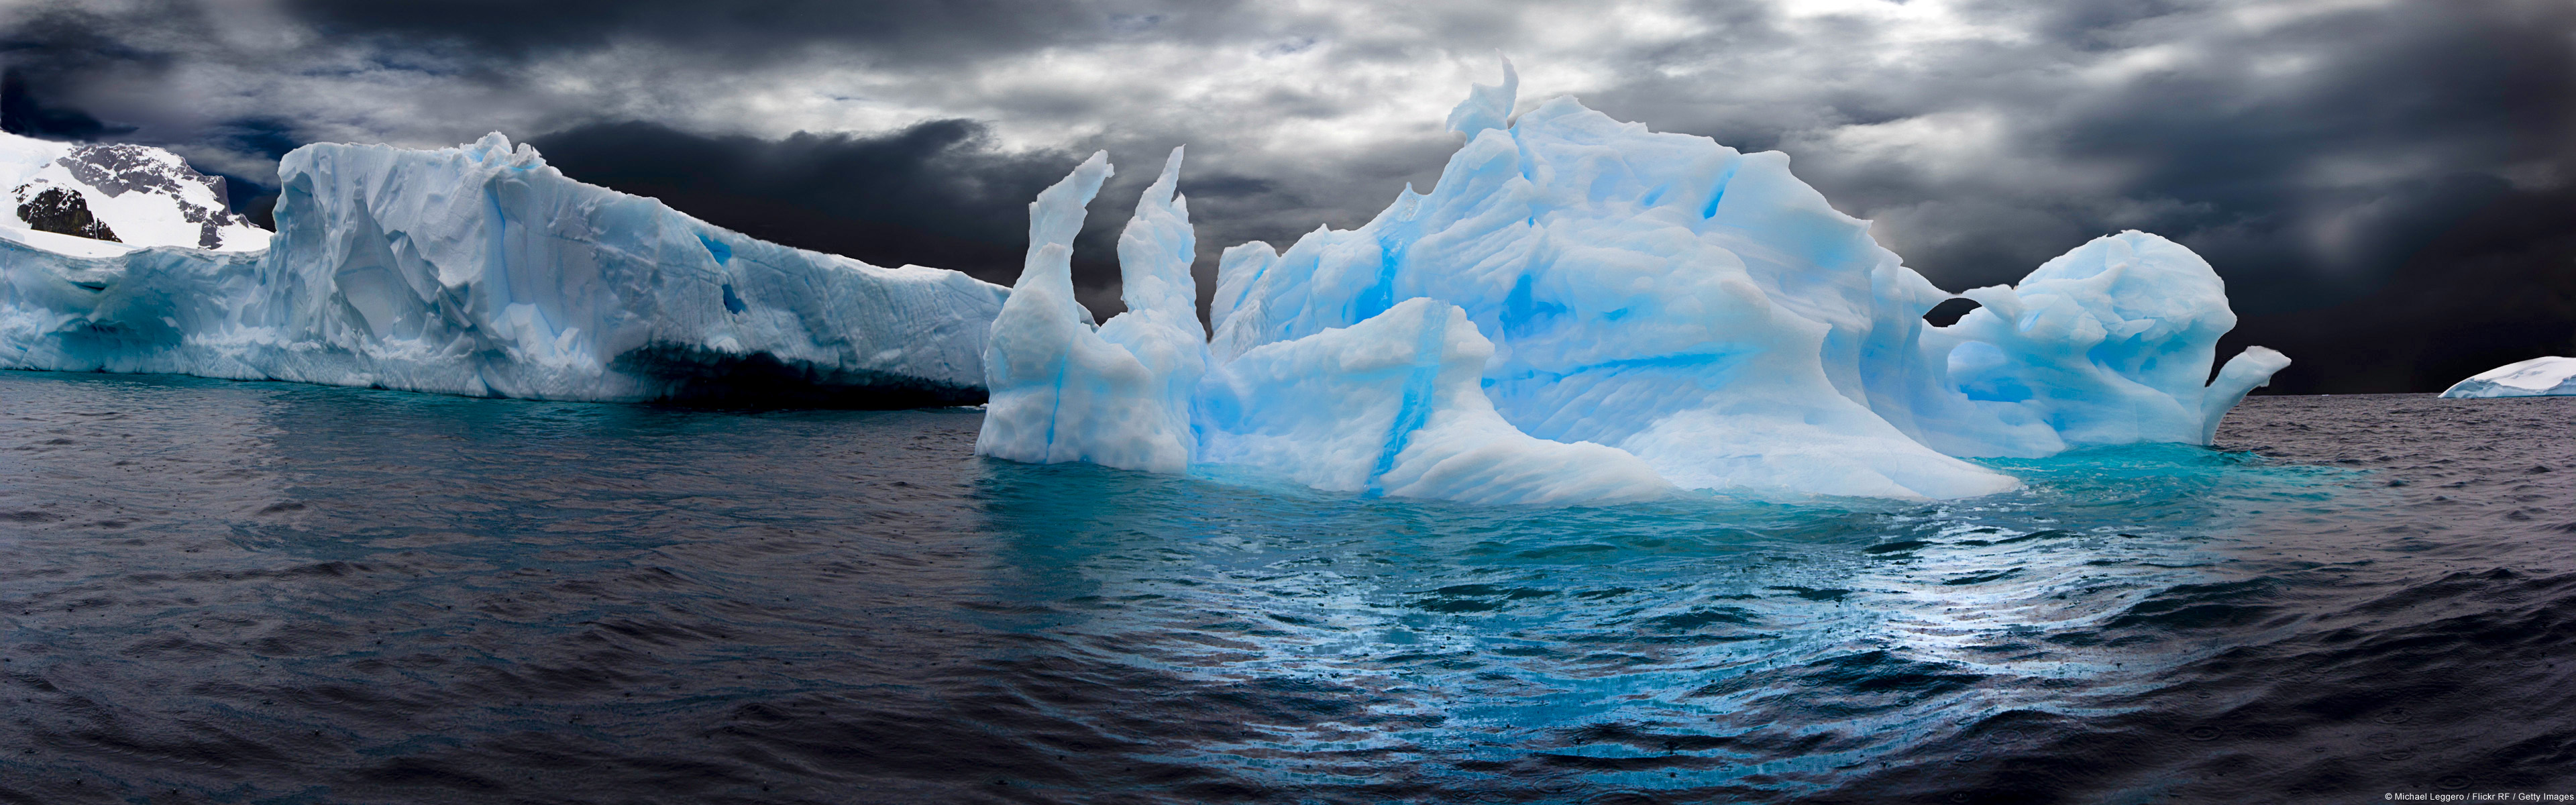 Ice Berg Full Hd Wallpaper And Background 3840x1200 Id